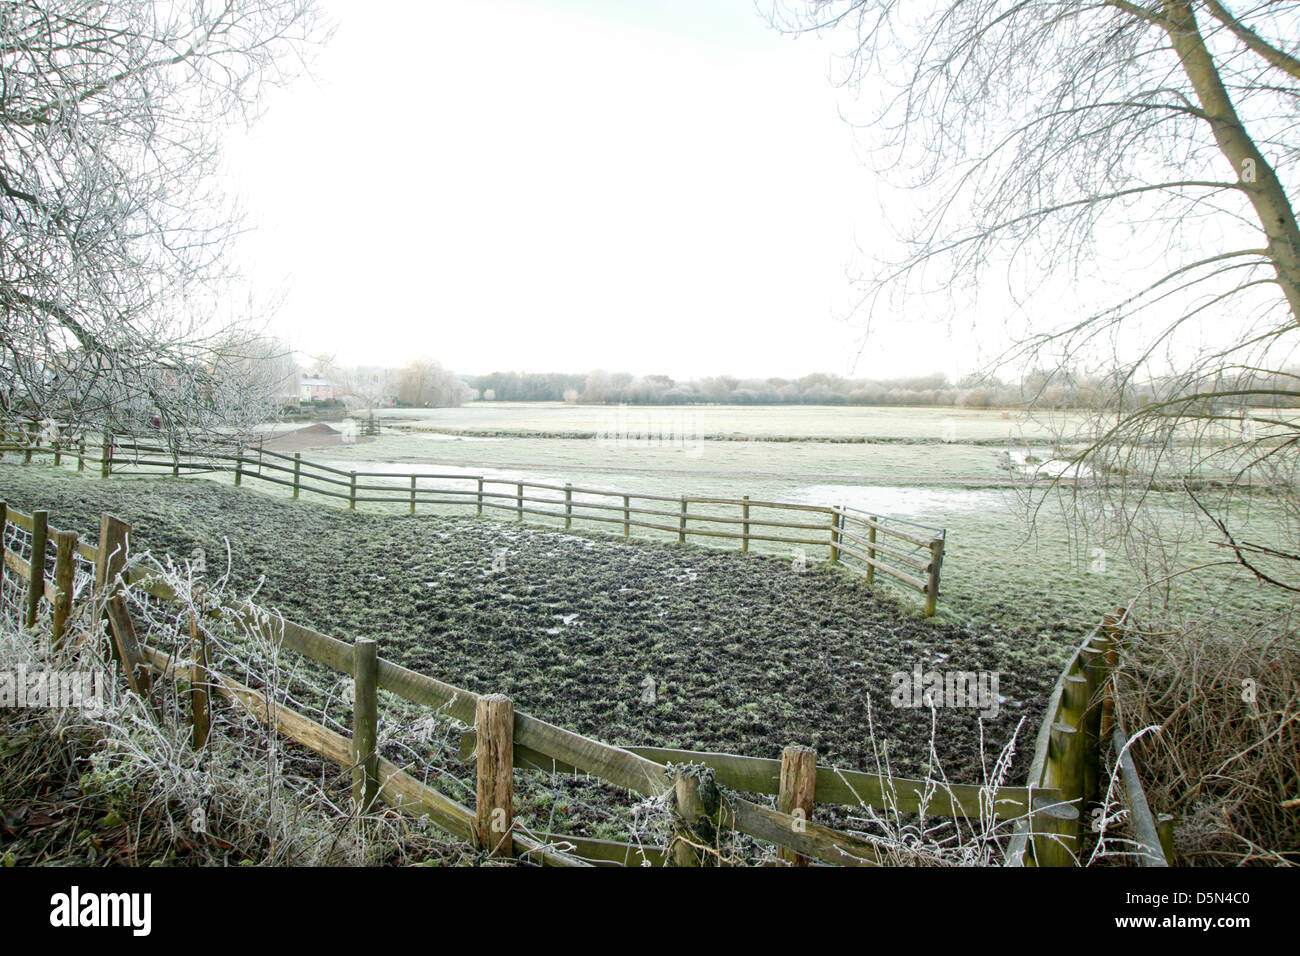 landscape view over winter marshland with fence structure in foreground - Stock Image